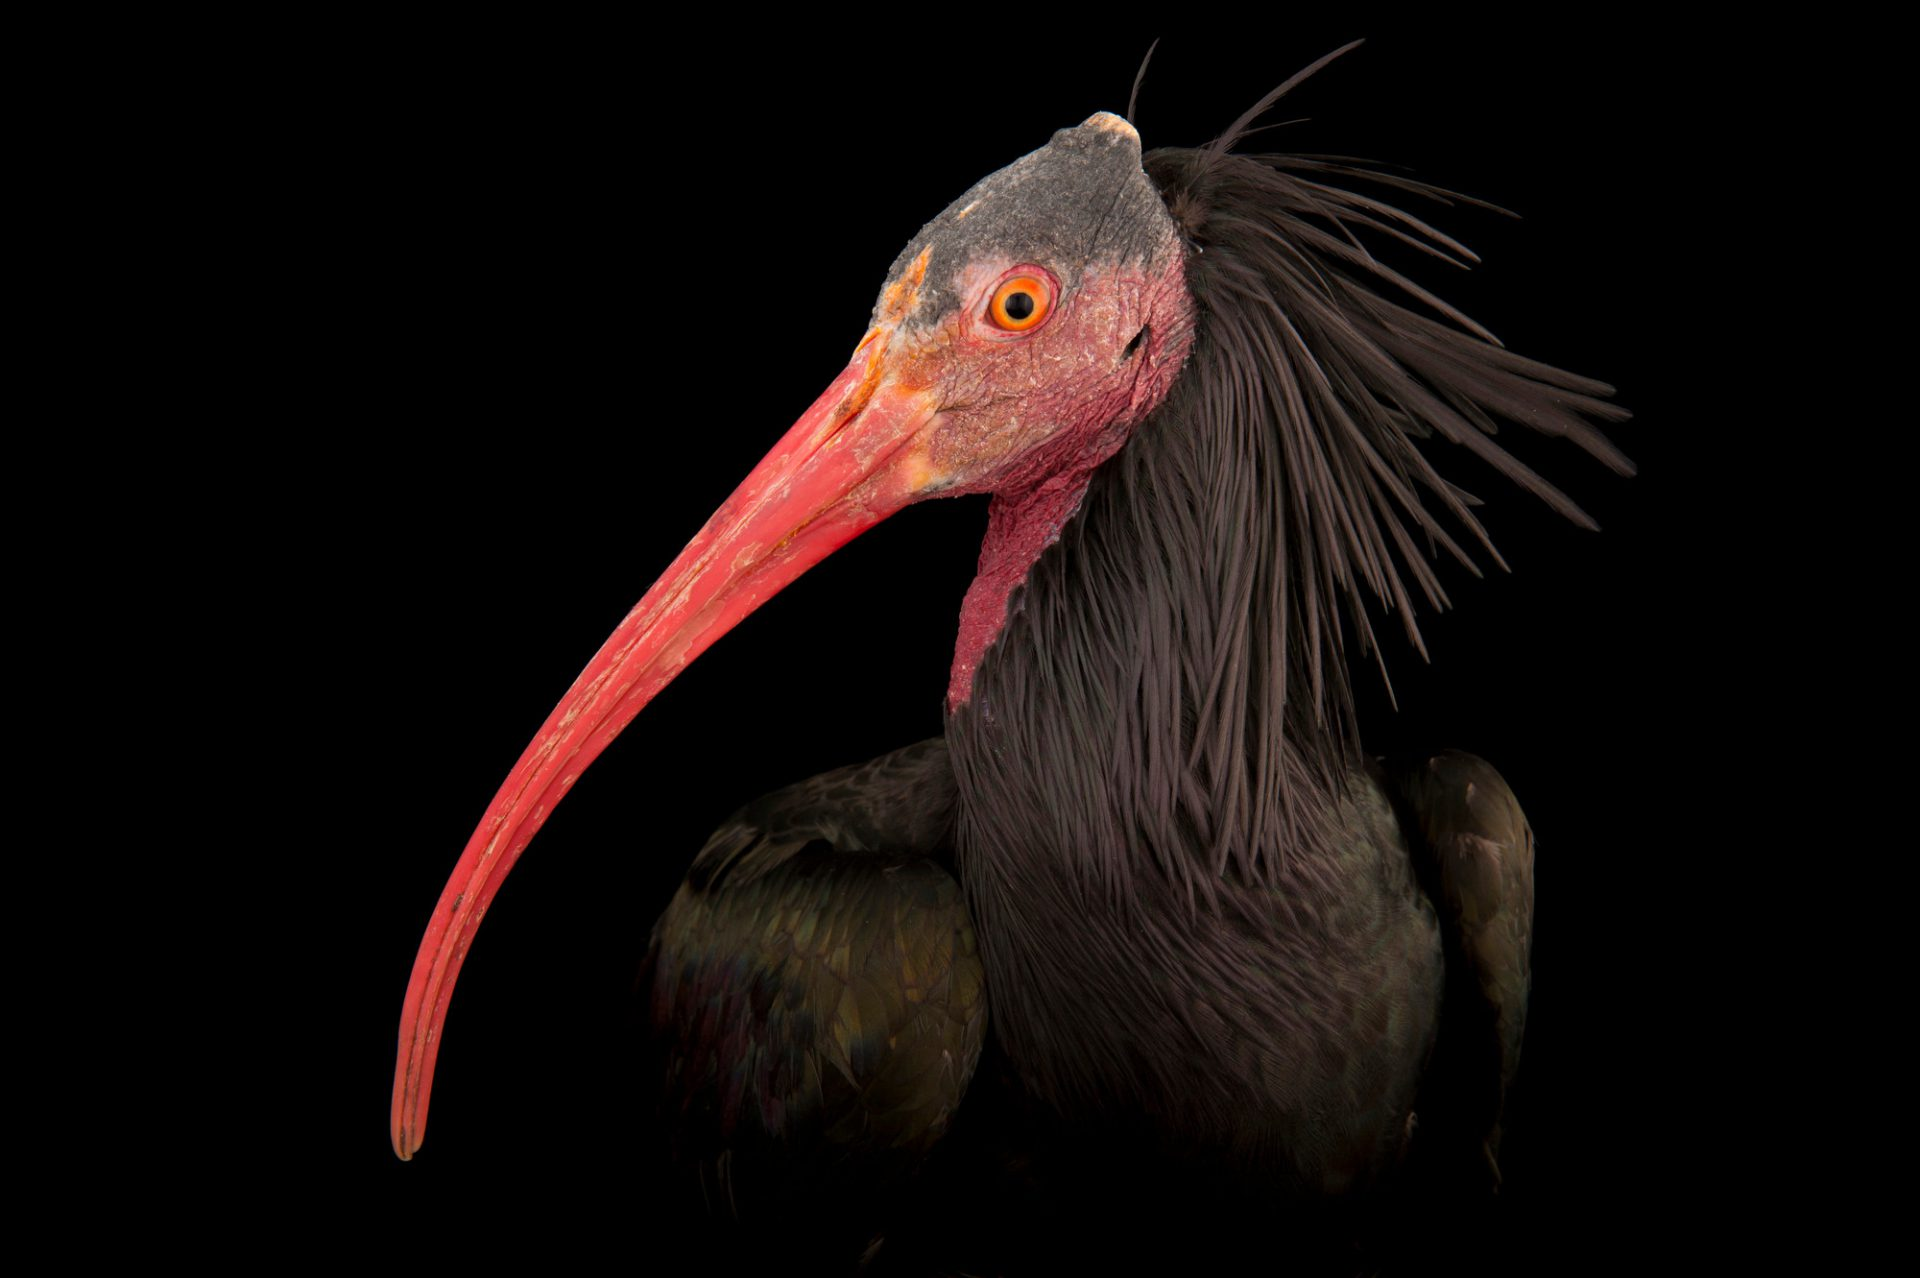 A Northern bald ibis (Geronticus eremita) at the Houston Zoo. This is a critically endangered (IUCN) and federally endangered bird from the Middle East.